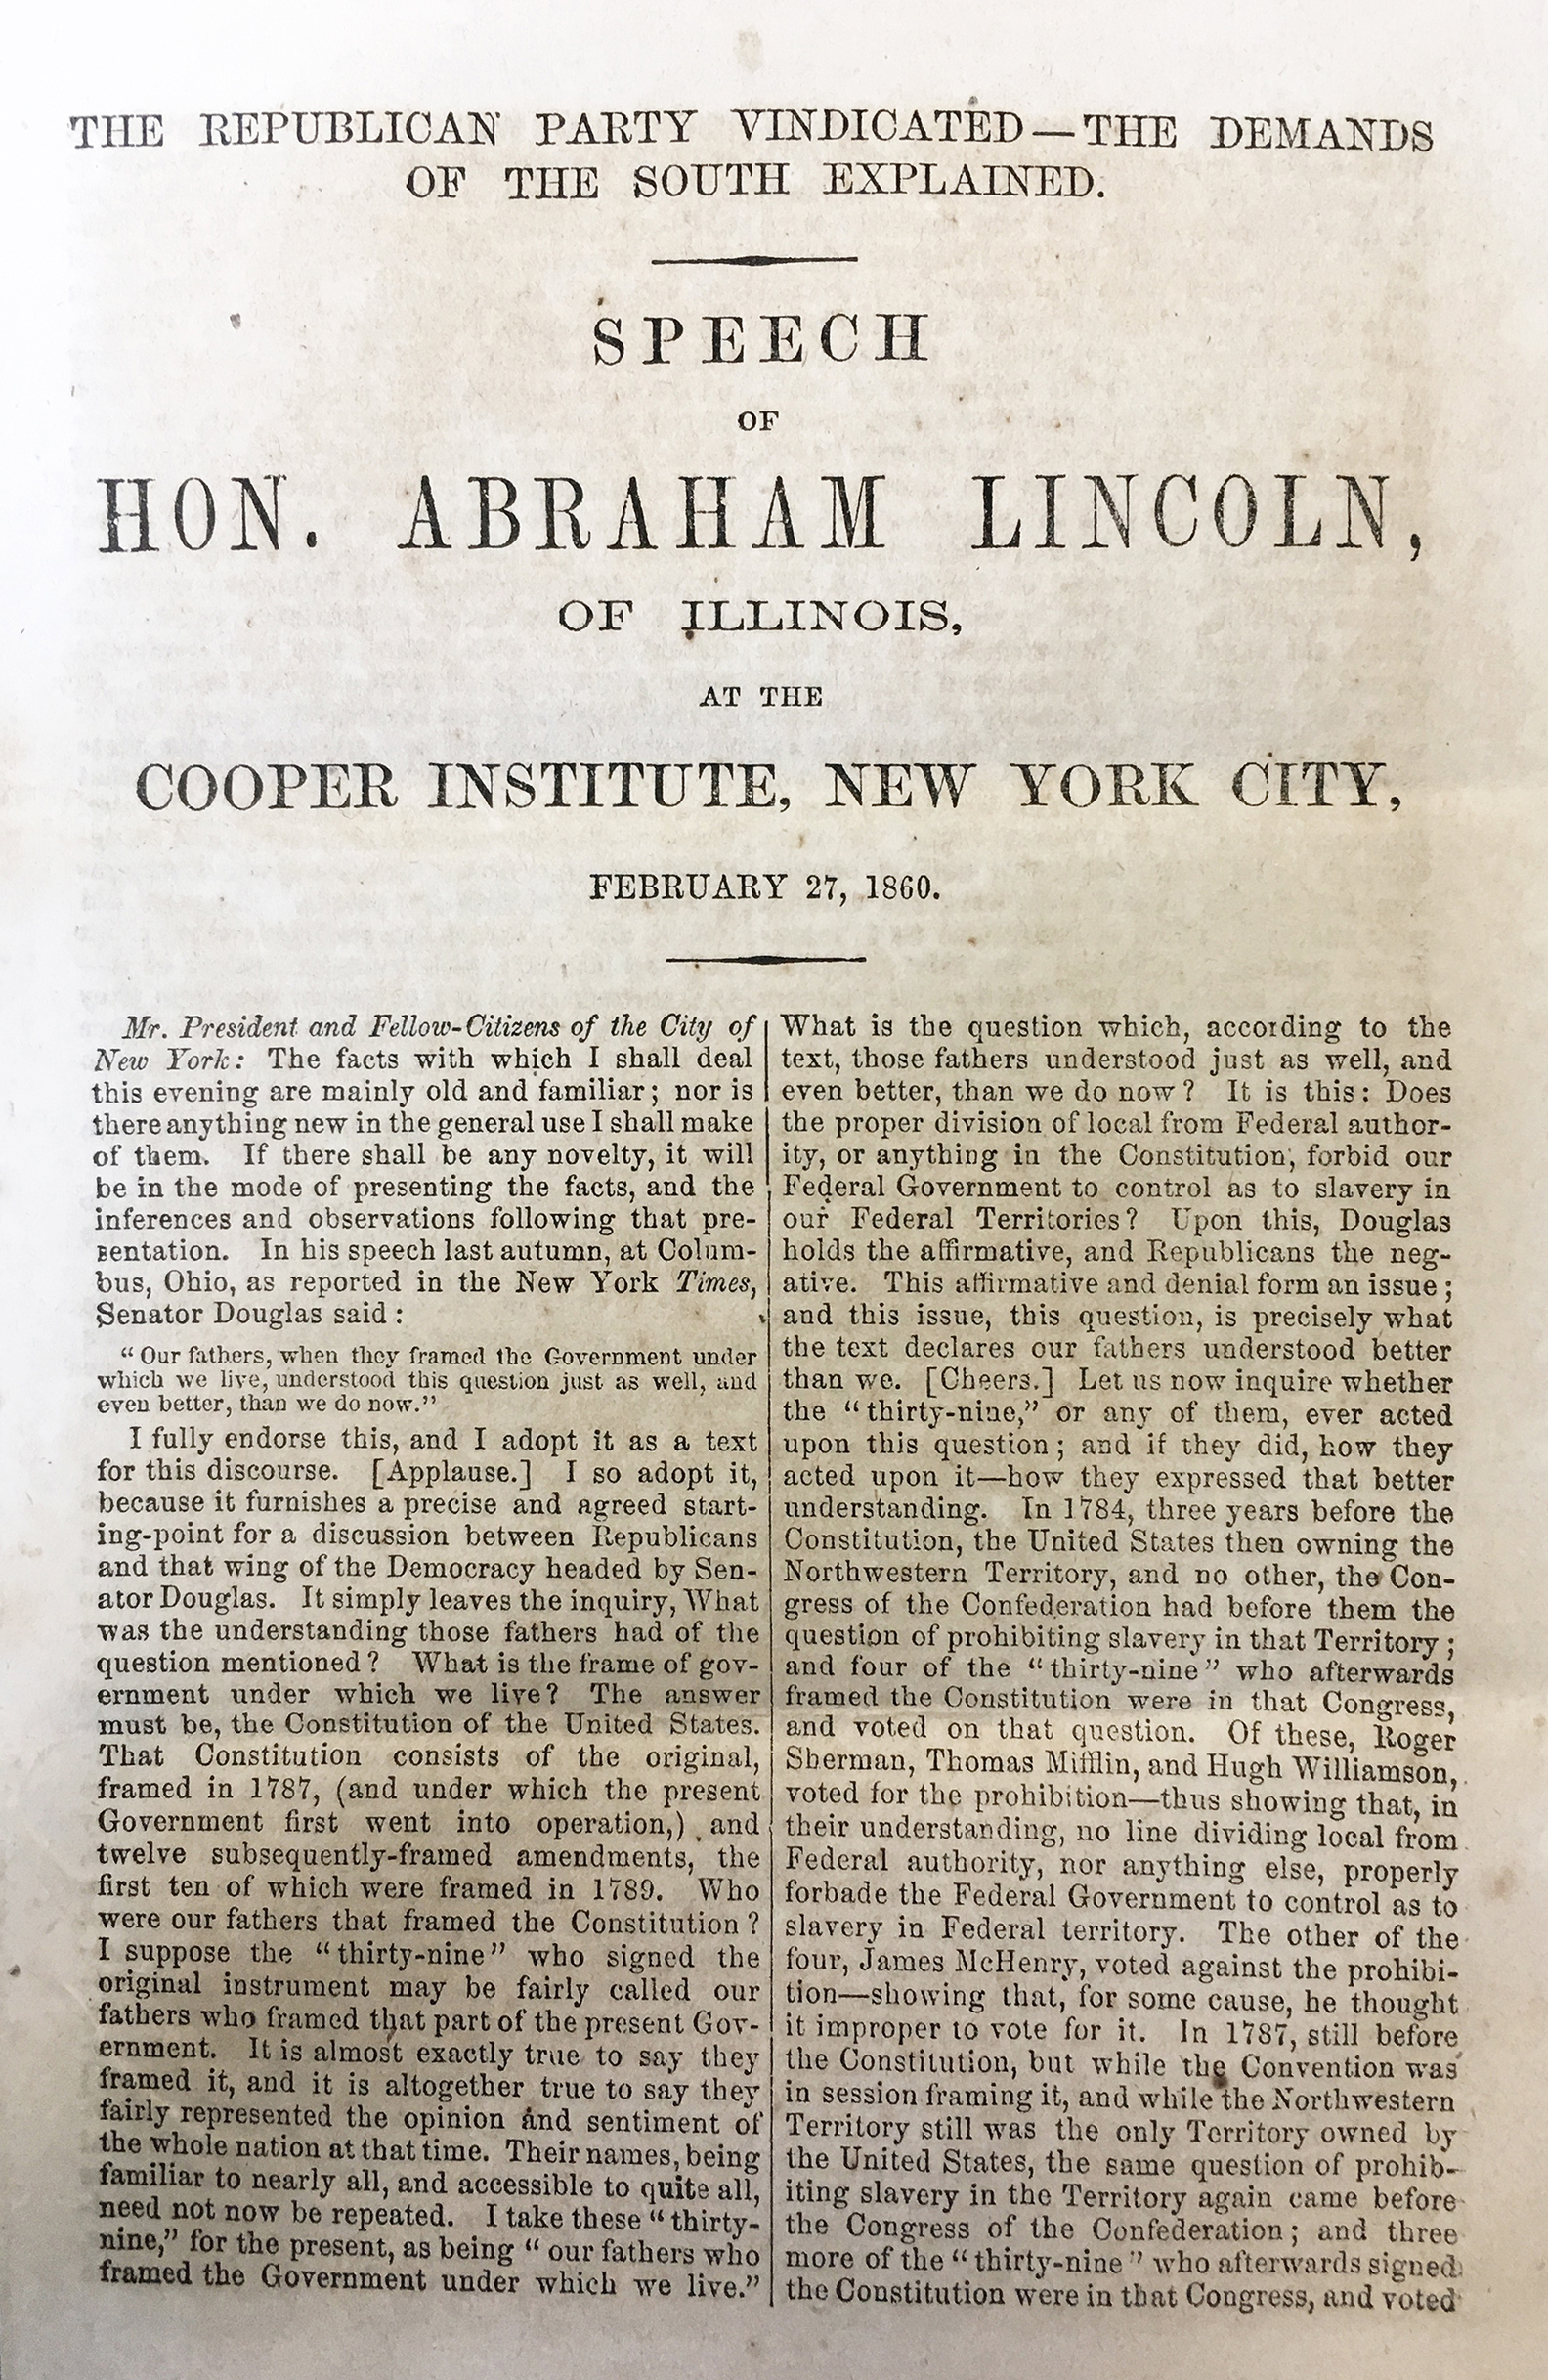 The Republican Party Vindicated-the Demands of the South Explained: Speech of Hon. Abraham Lincoln, of Illinois, at the Cooper Institute, New York City